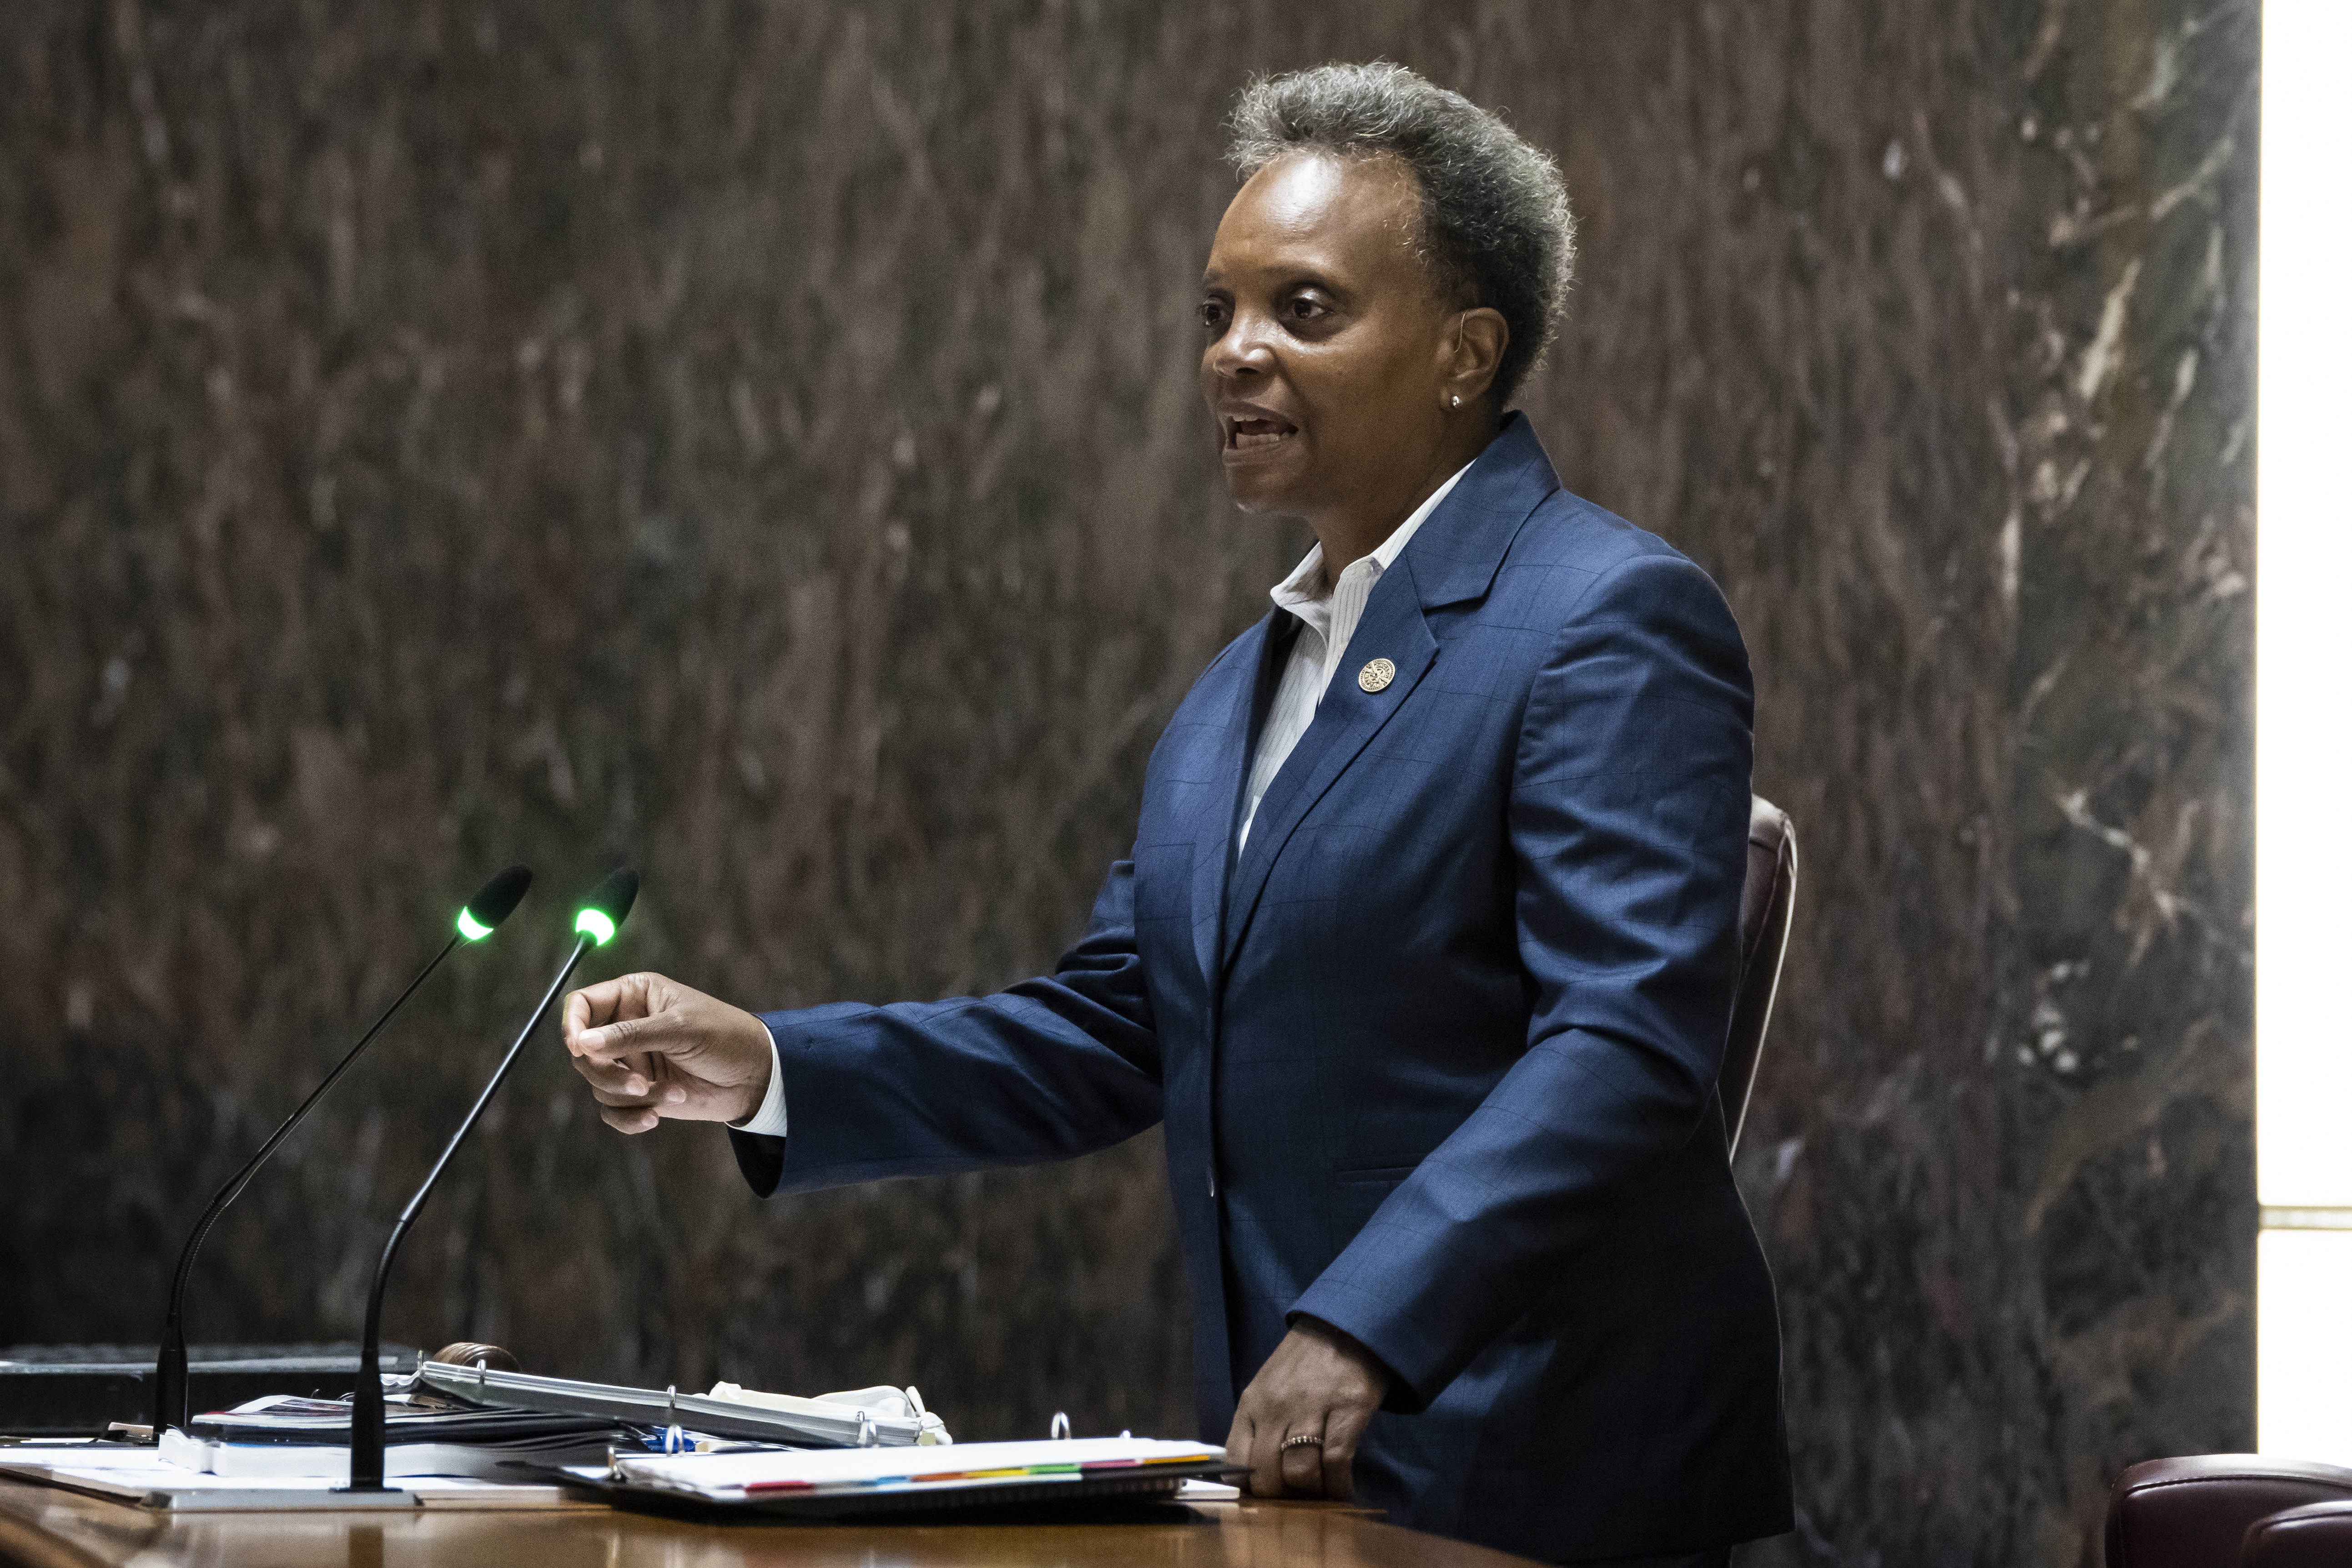 Mayor Lori Lightfoot delivers the city's 2022 budget proposal during a Chicago City Council meeting at City Hall Monday morning.